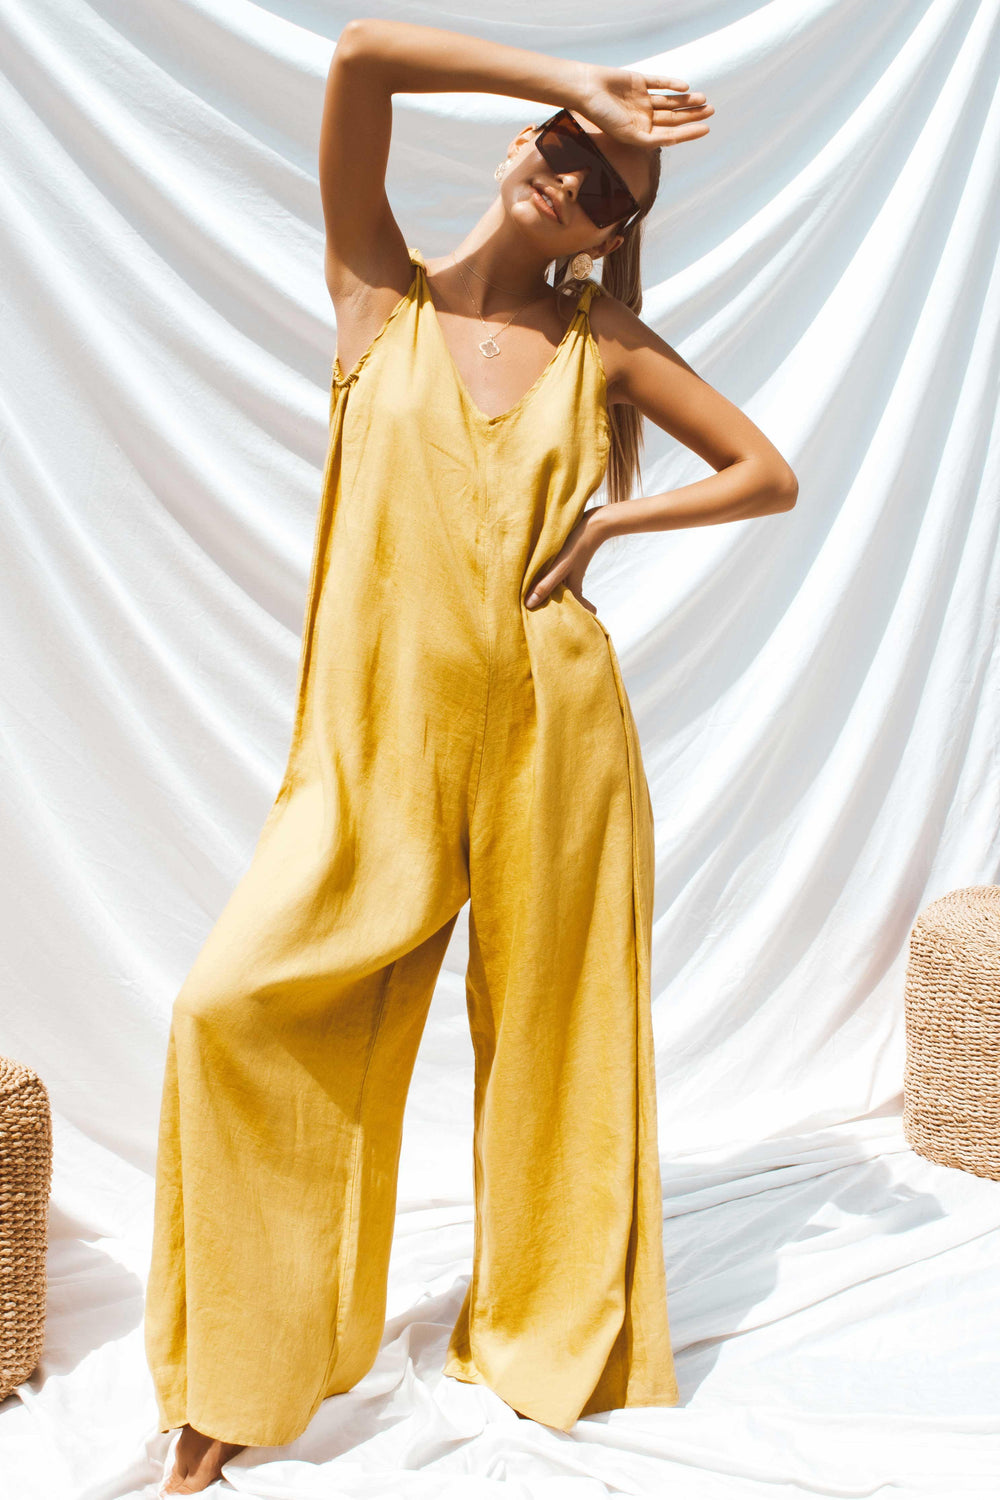 APOLLO JUMPSUIT IN YELLOW | Women's Online Shopping | CHICLEFRIQUE